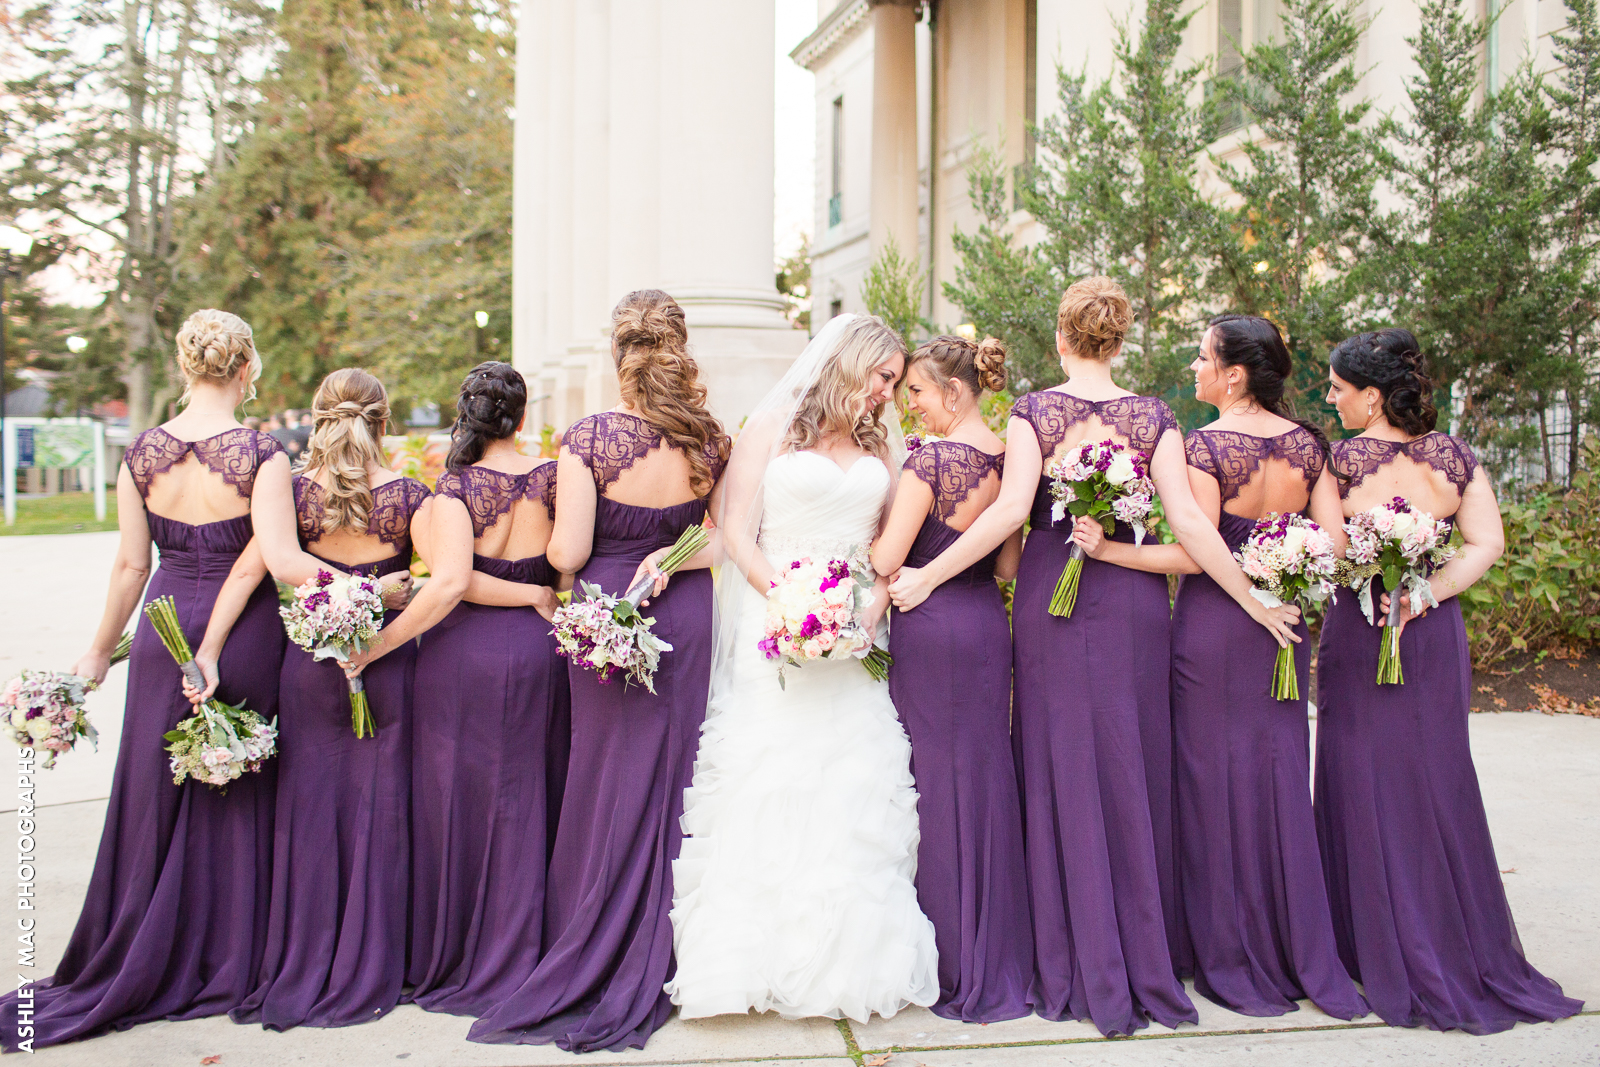 Great Bridesmaids Dresses For The